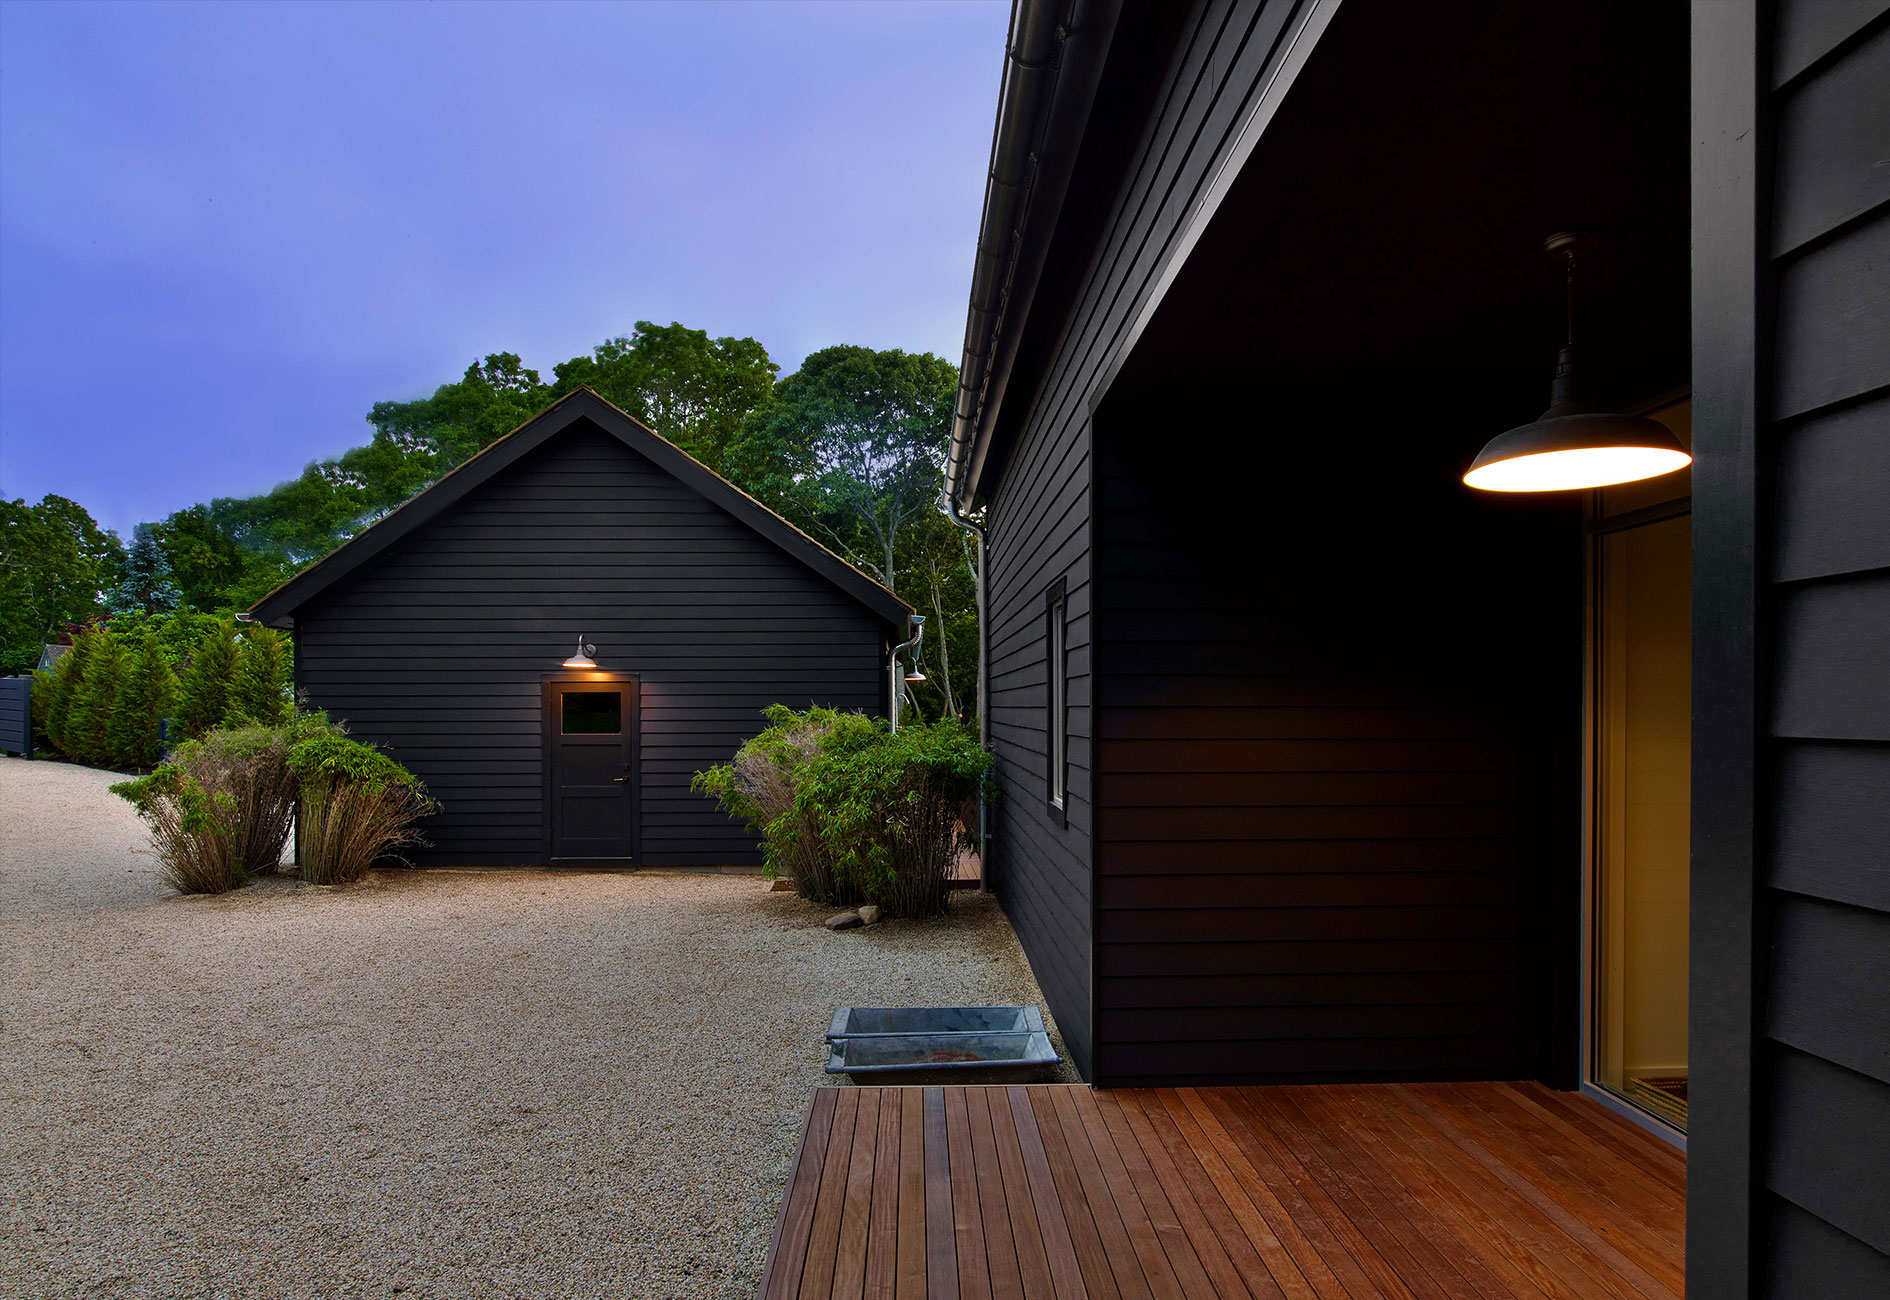 BLACKBARN 1 by Mark Zeff Design